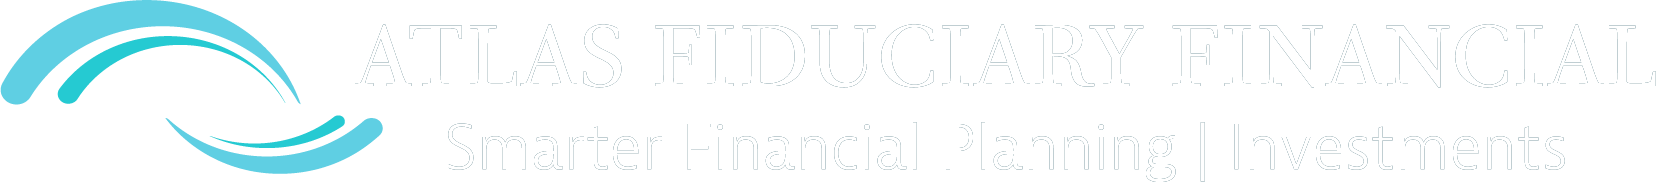 Logo for Atlas Fiduciary Financial | Smarter Financial Planning & Wealth Management